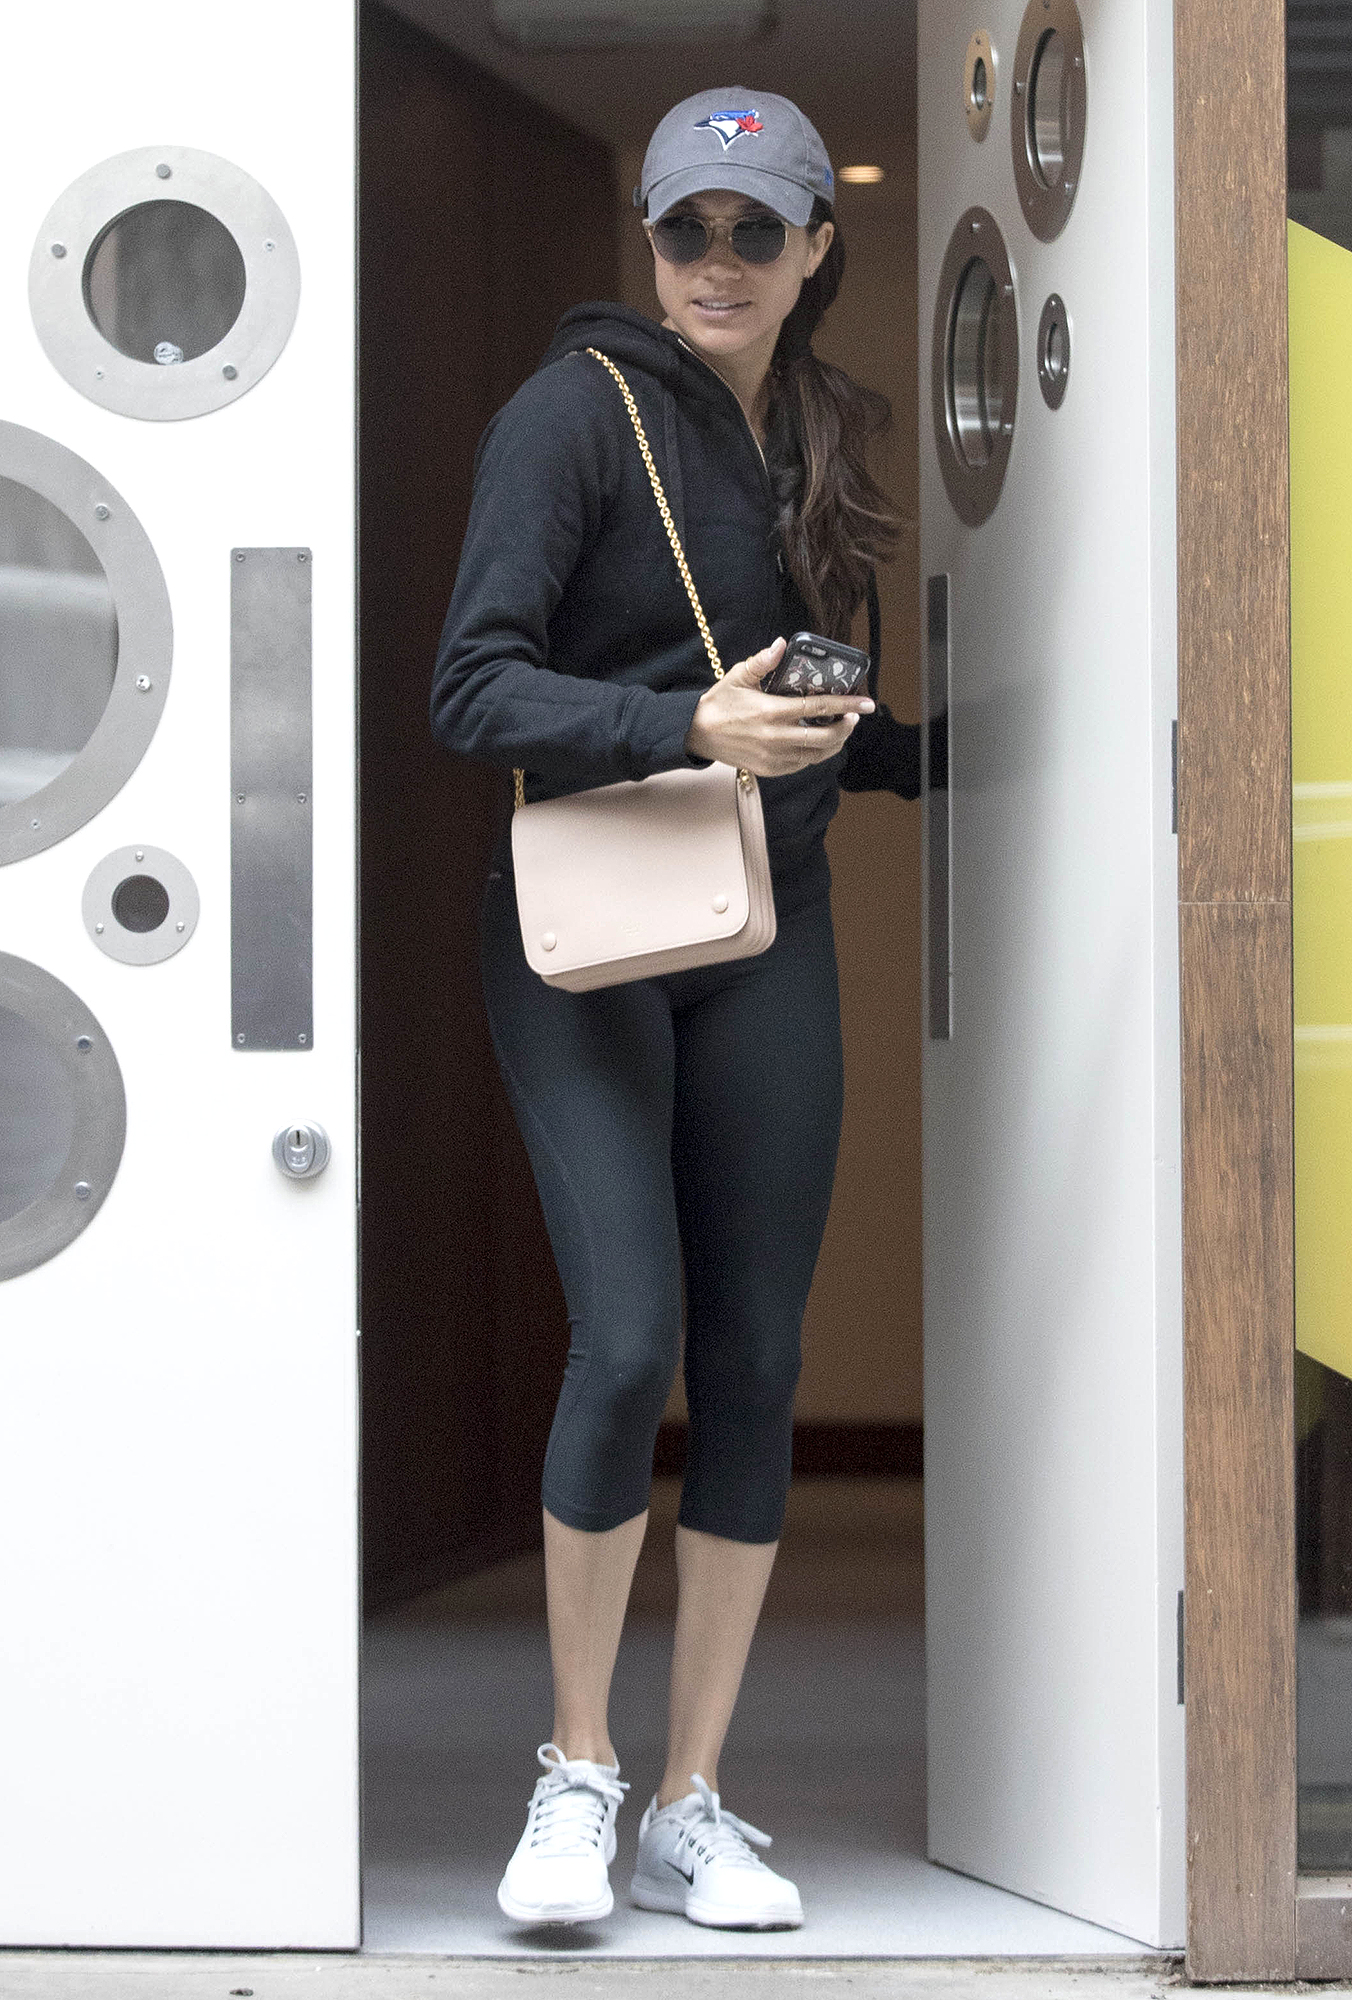 PREMIUM EXCLUSIVE: Meghan Markle Visits a London Spa ahead of Pippa Middleton's Wedding.